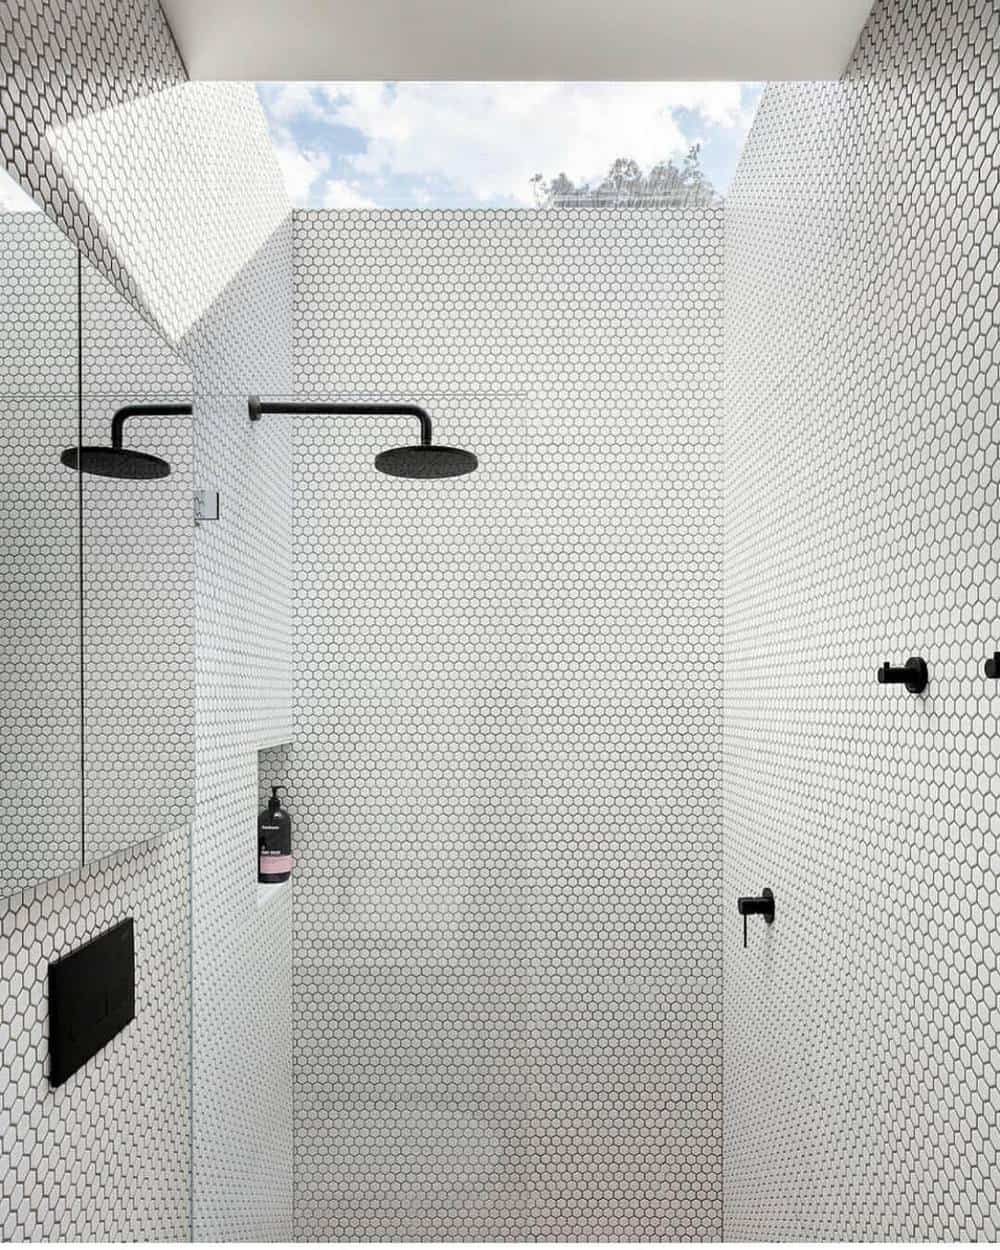 5 stylish bathroom tile ideas to get inspired - All Over Option